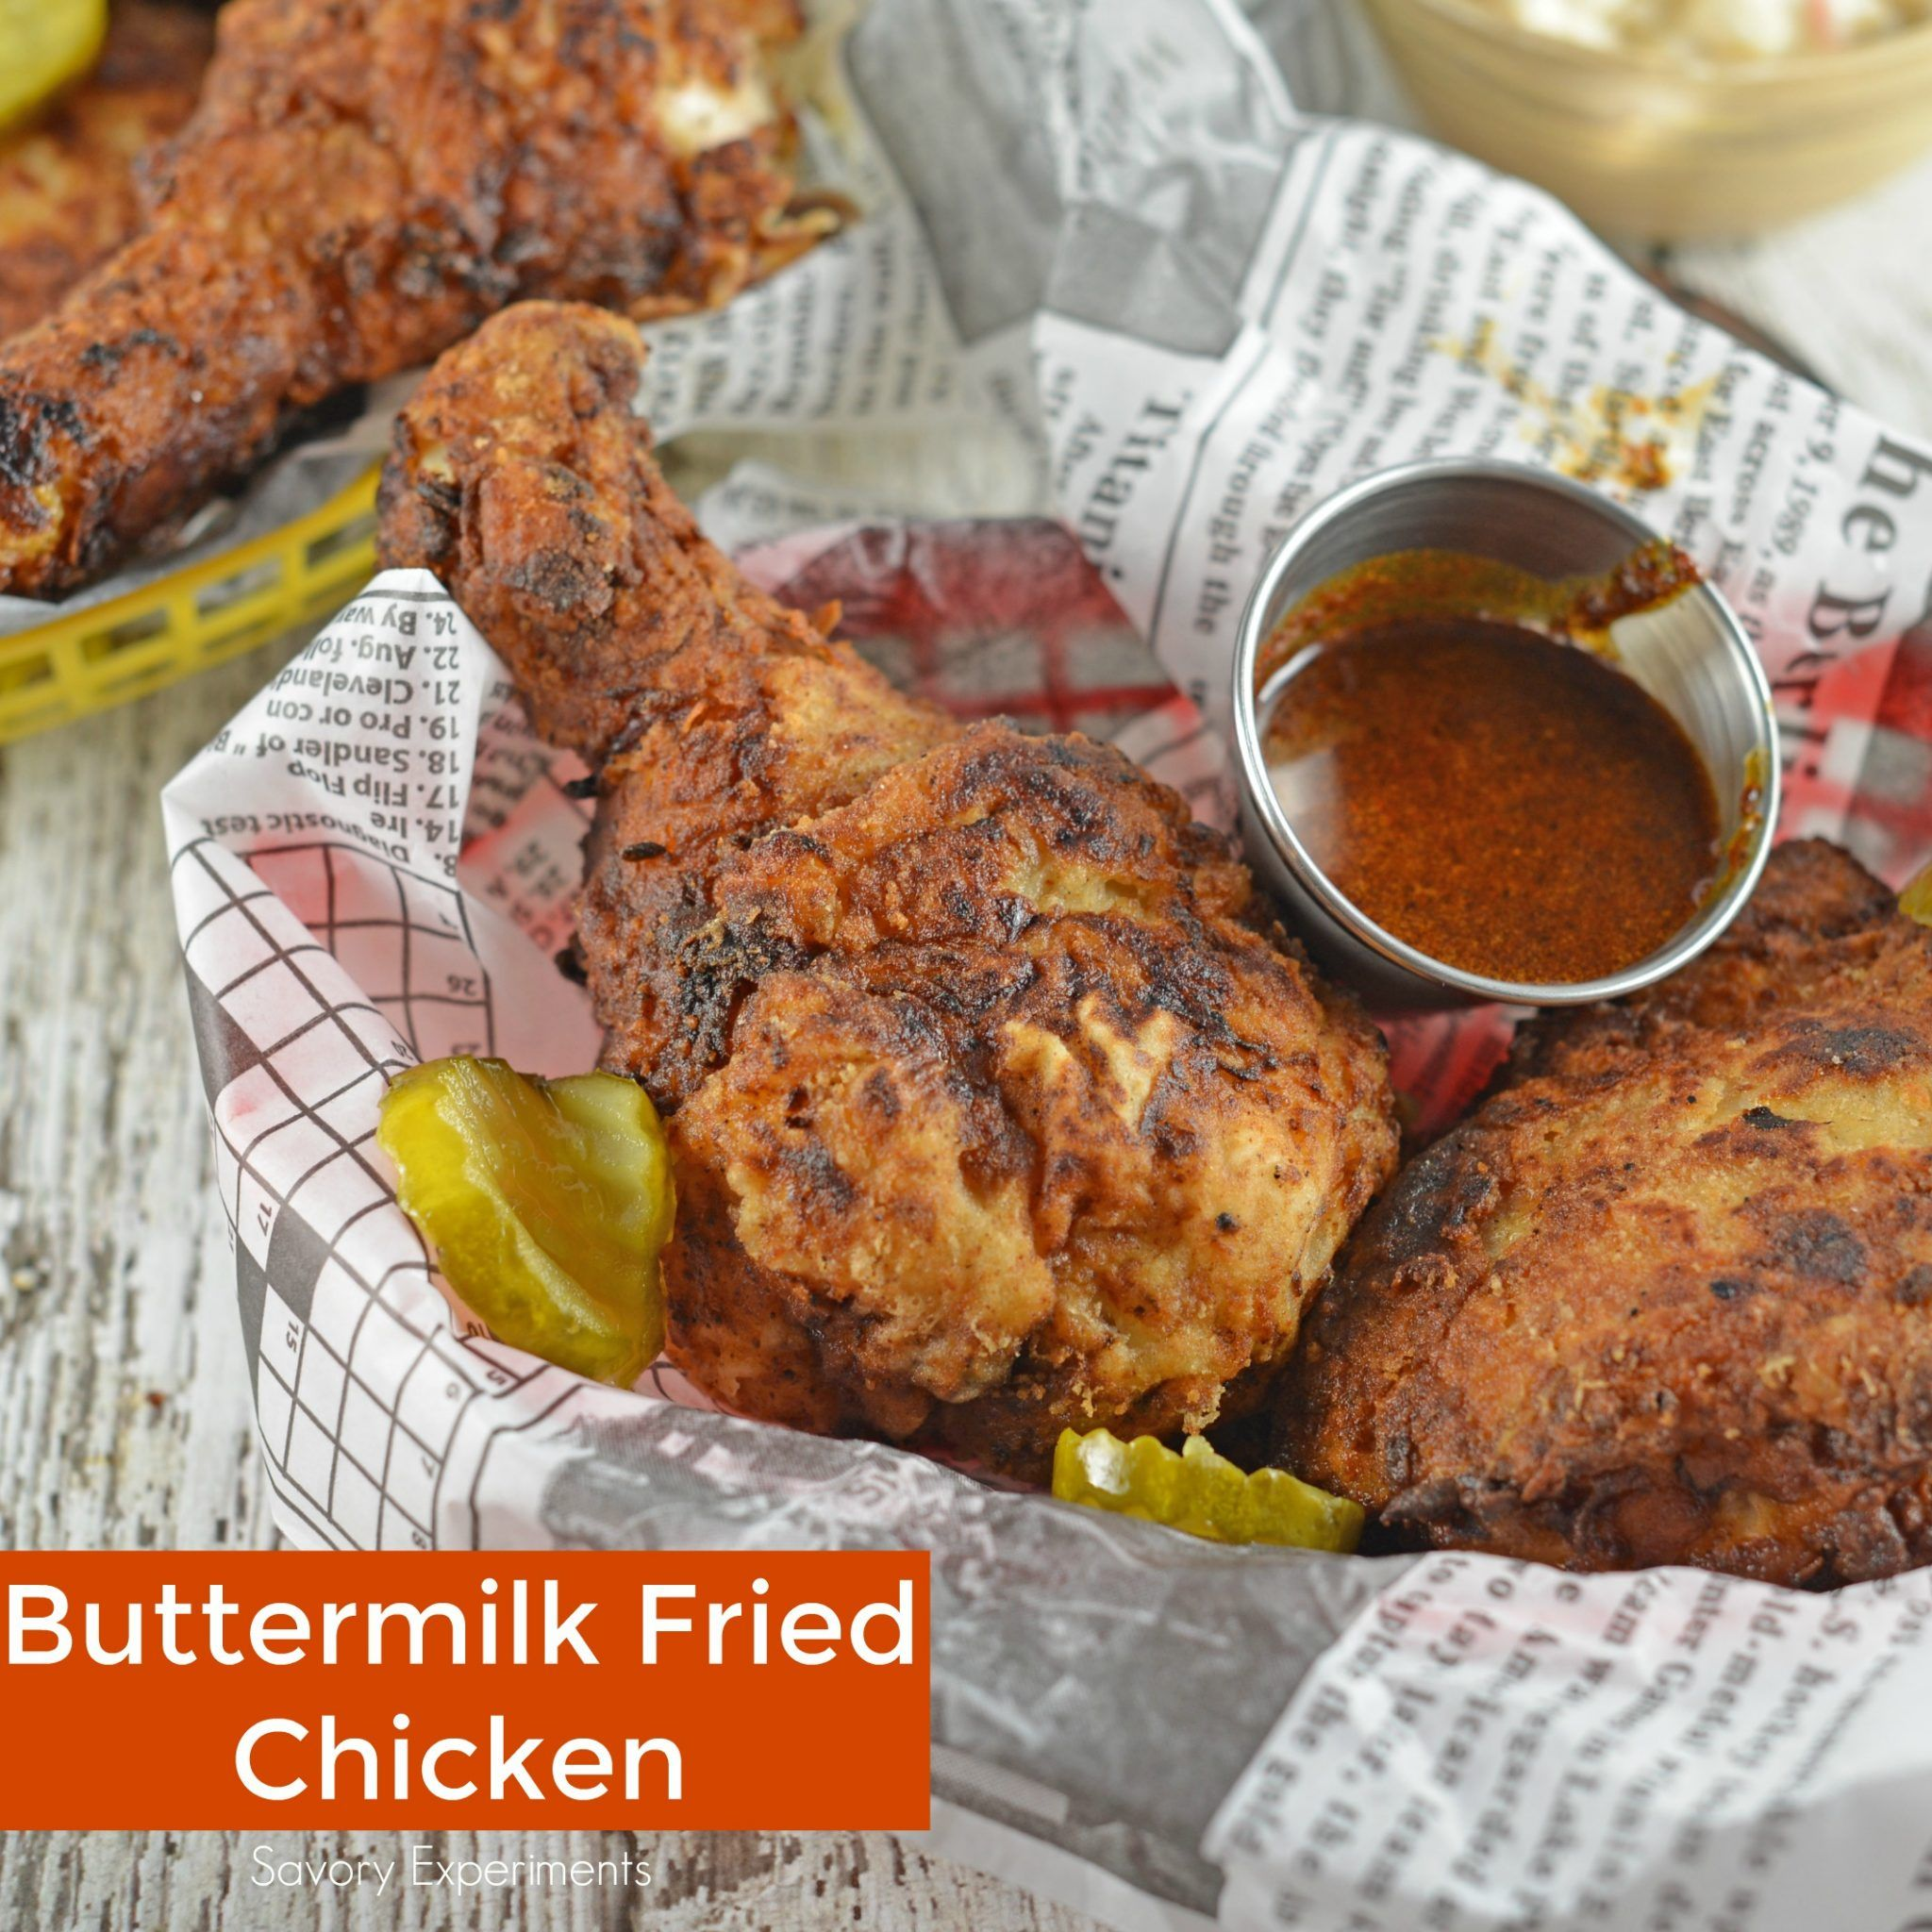 This Is The Best Buttermilk Fried Chicken Recipe Brined Chicken With Fresh Herbs Buttermil Buttermilk Fried Chicken Chicken Recipes Best Fried Chicken Recipe